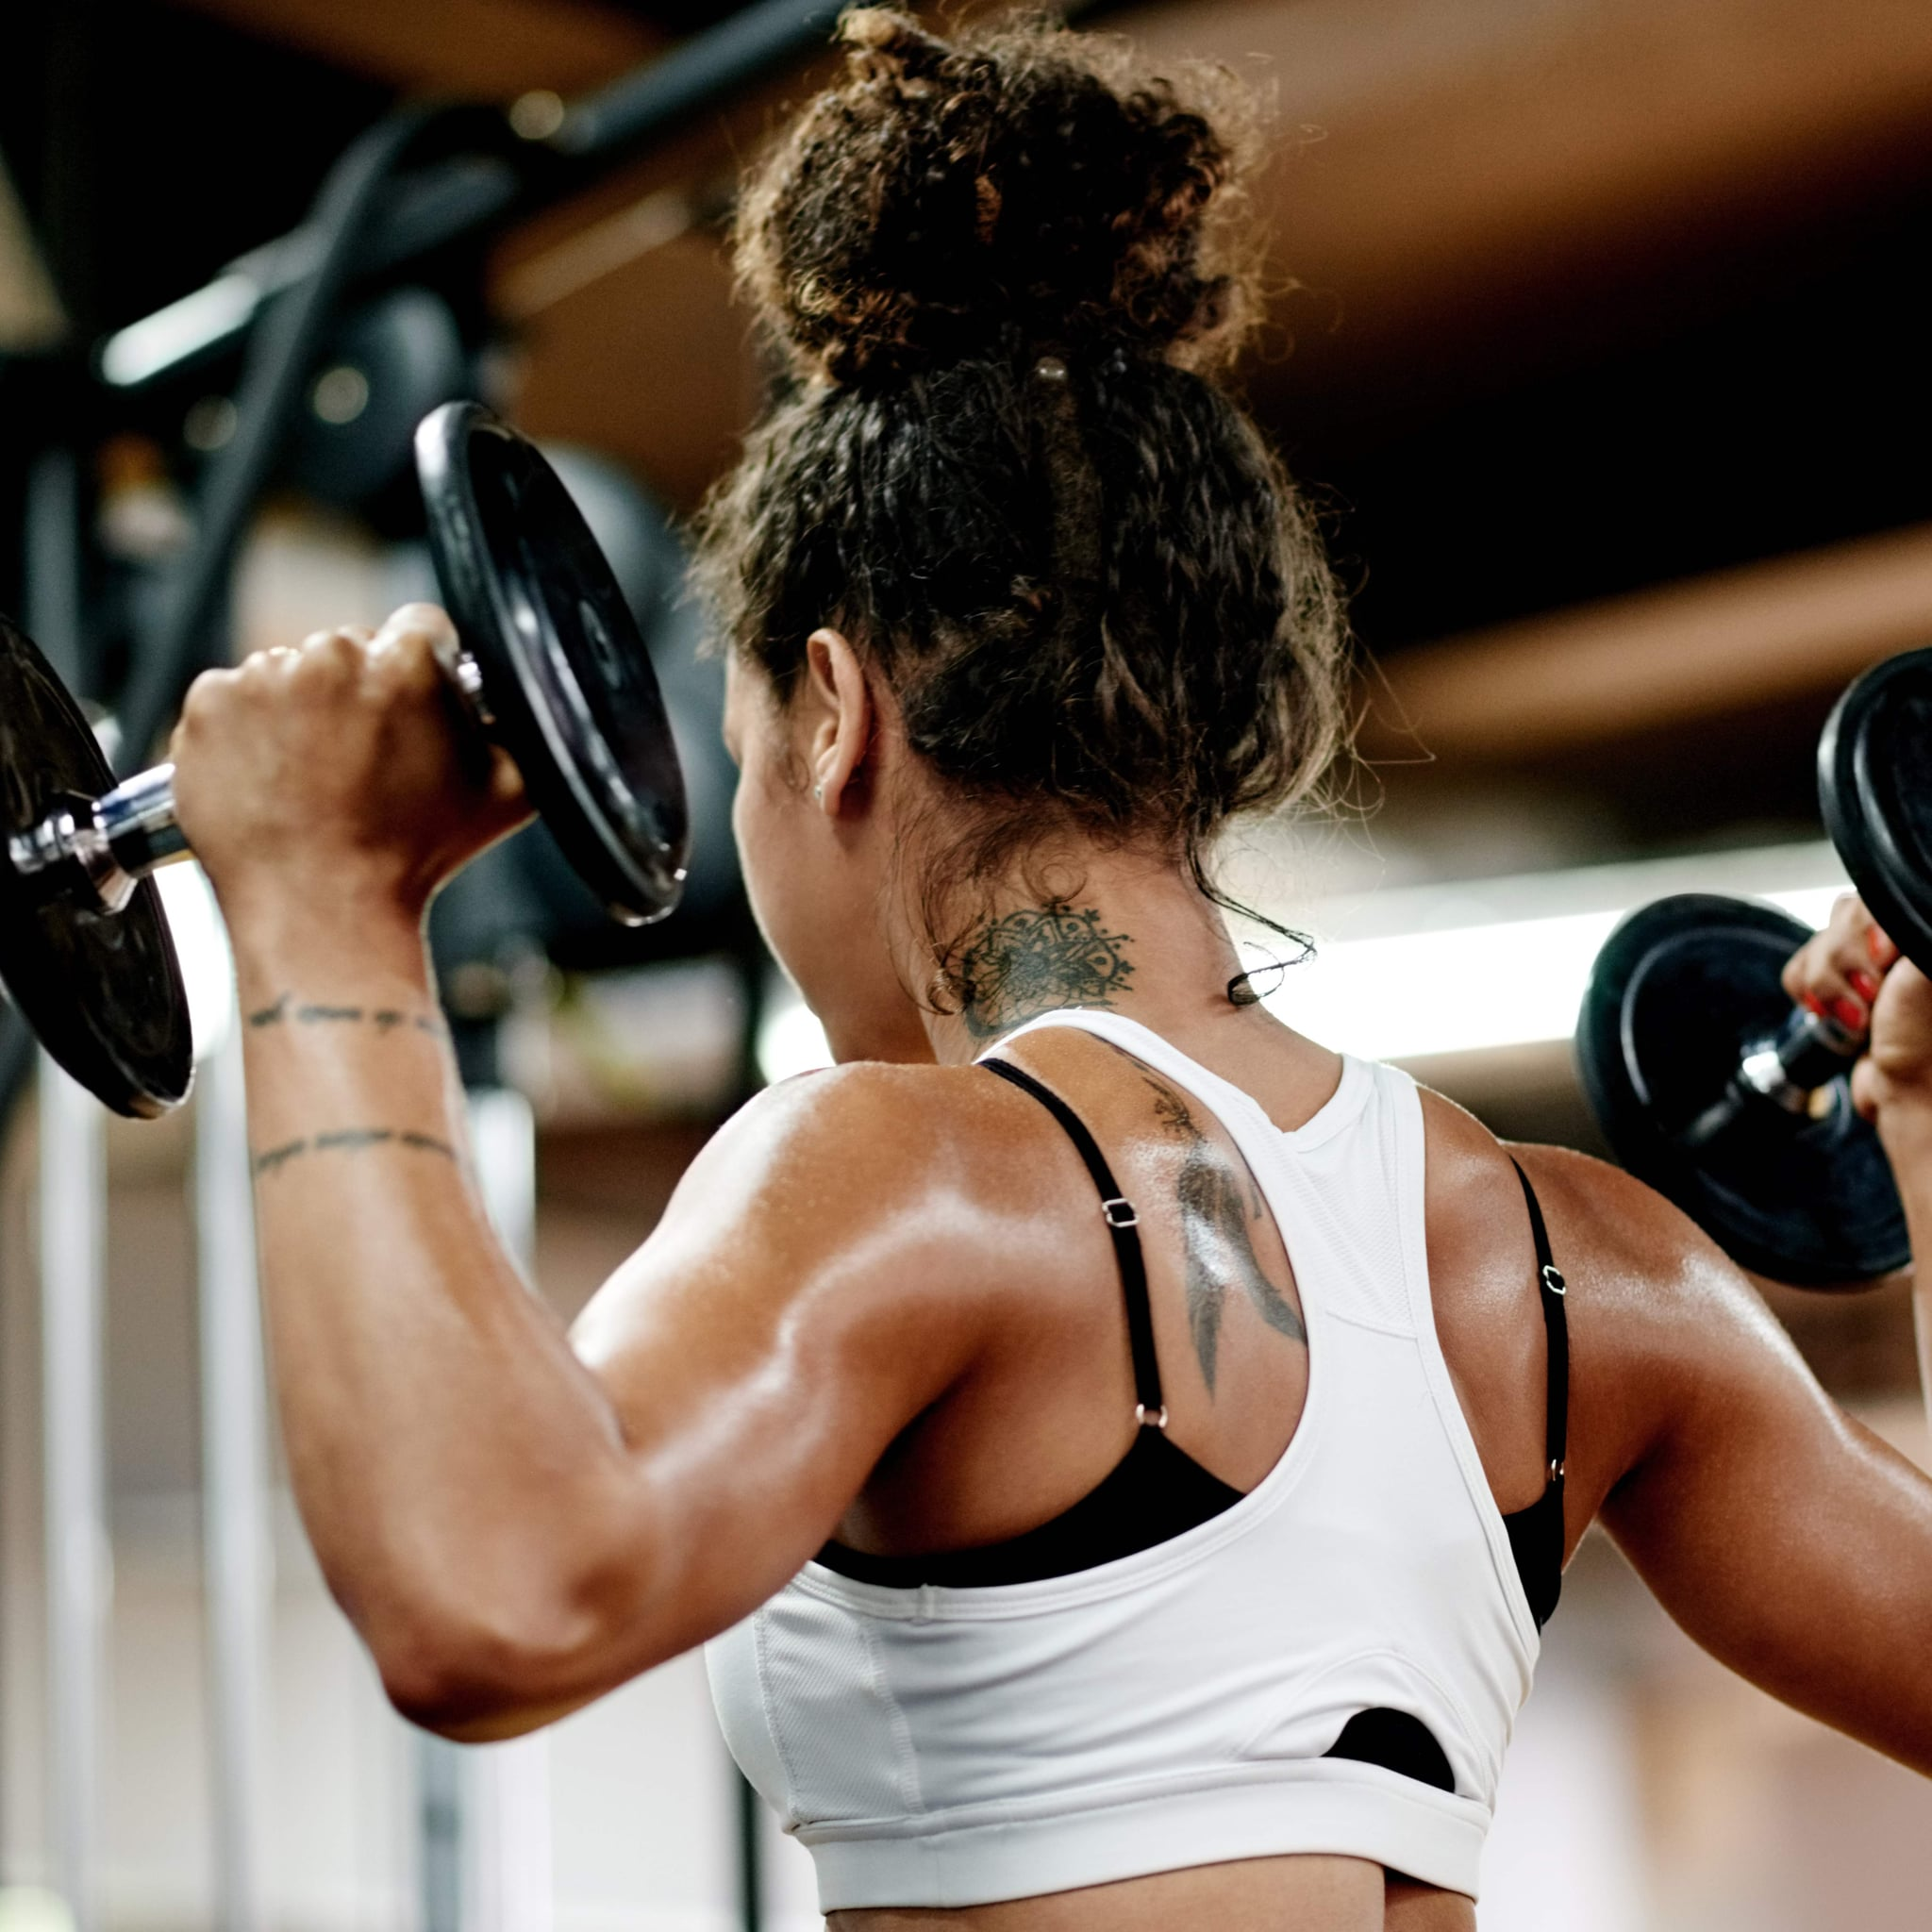 Lawnmower Best Dumbbell Moves Popsugar Fitness Australia Photo 17 Weight Training For Women Circuit Workout